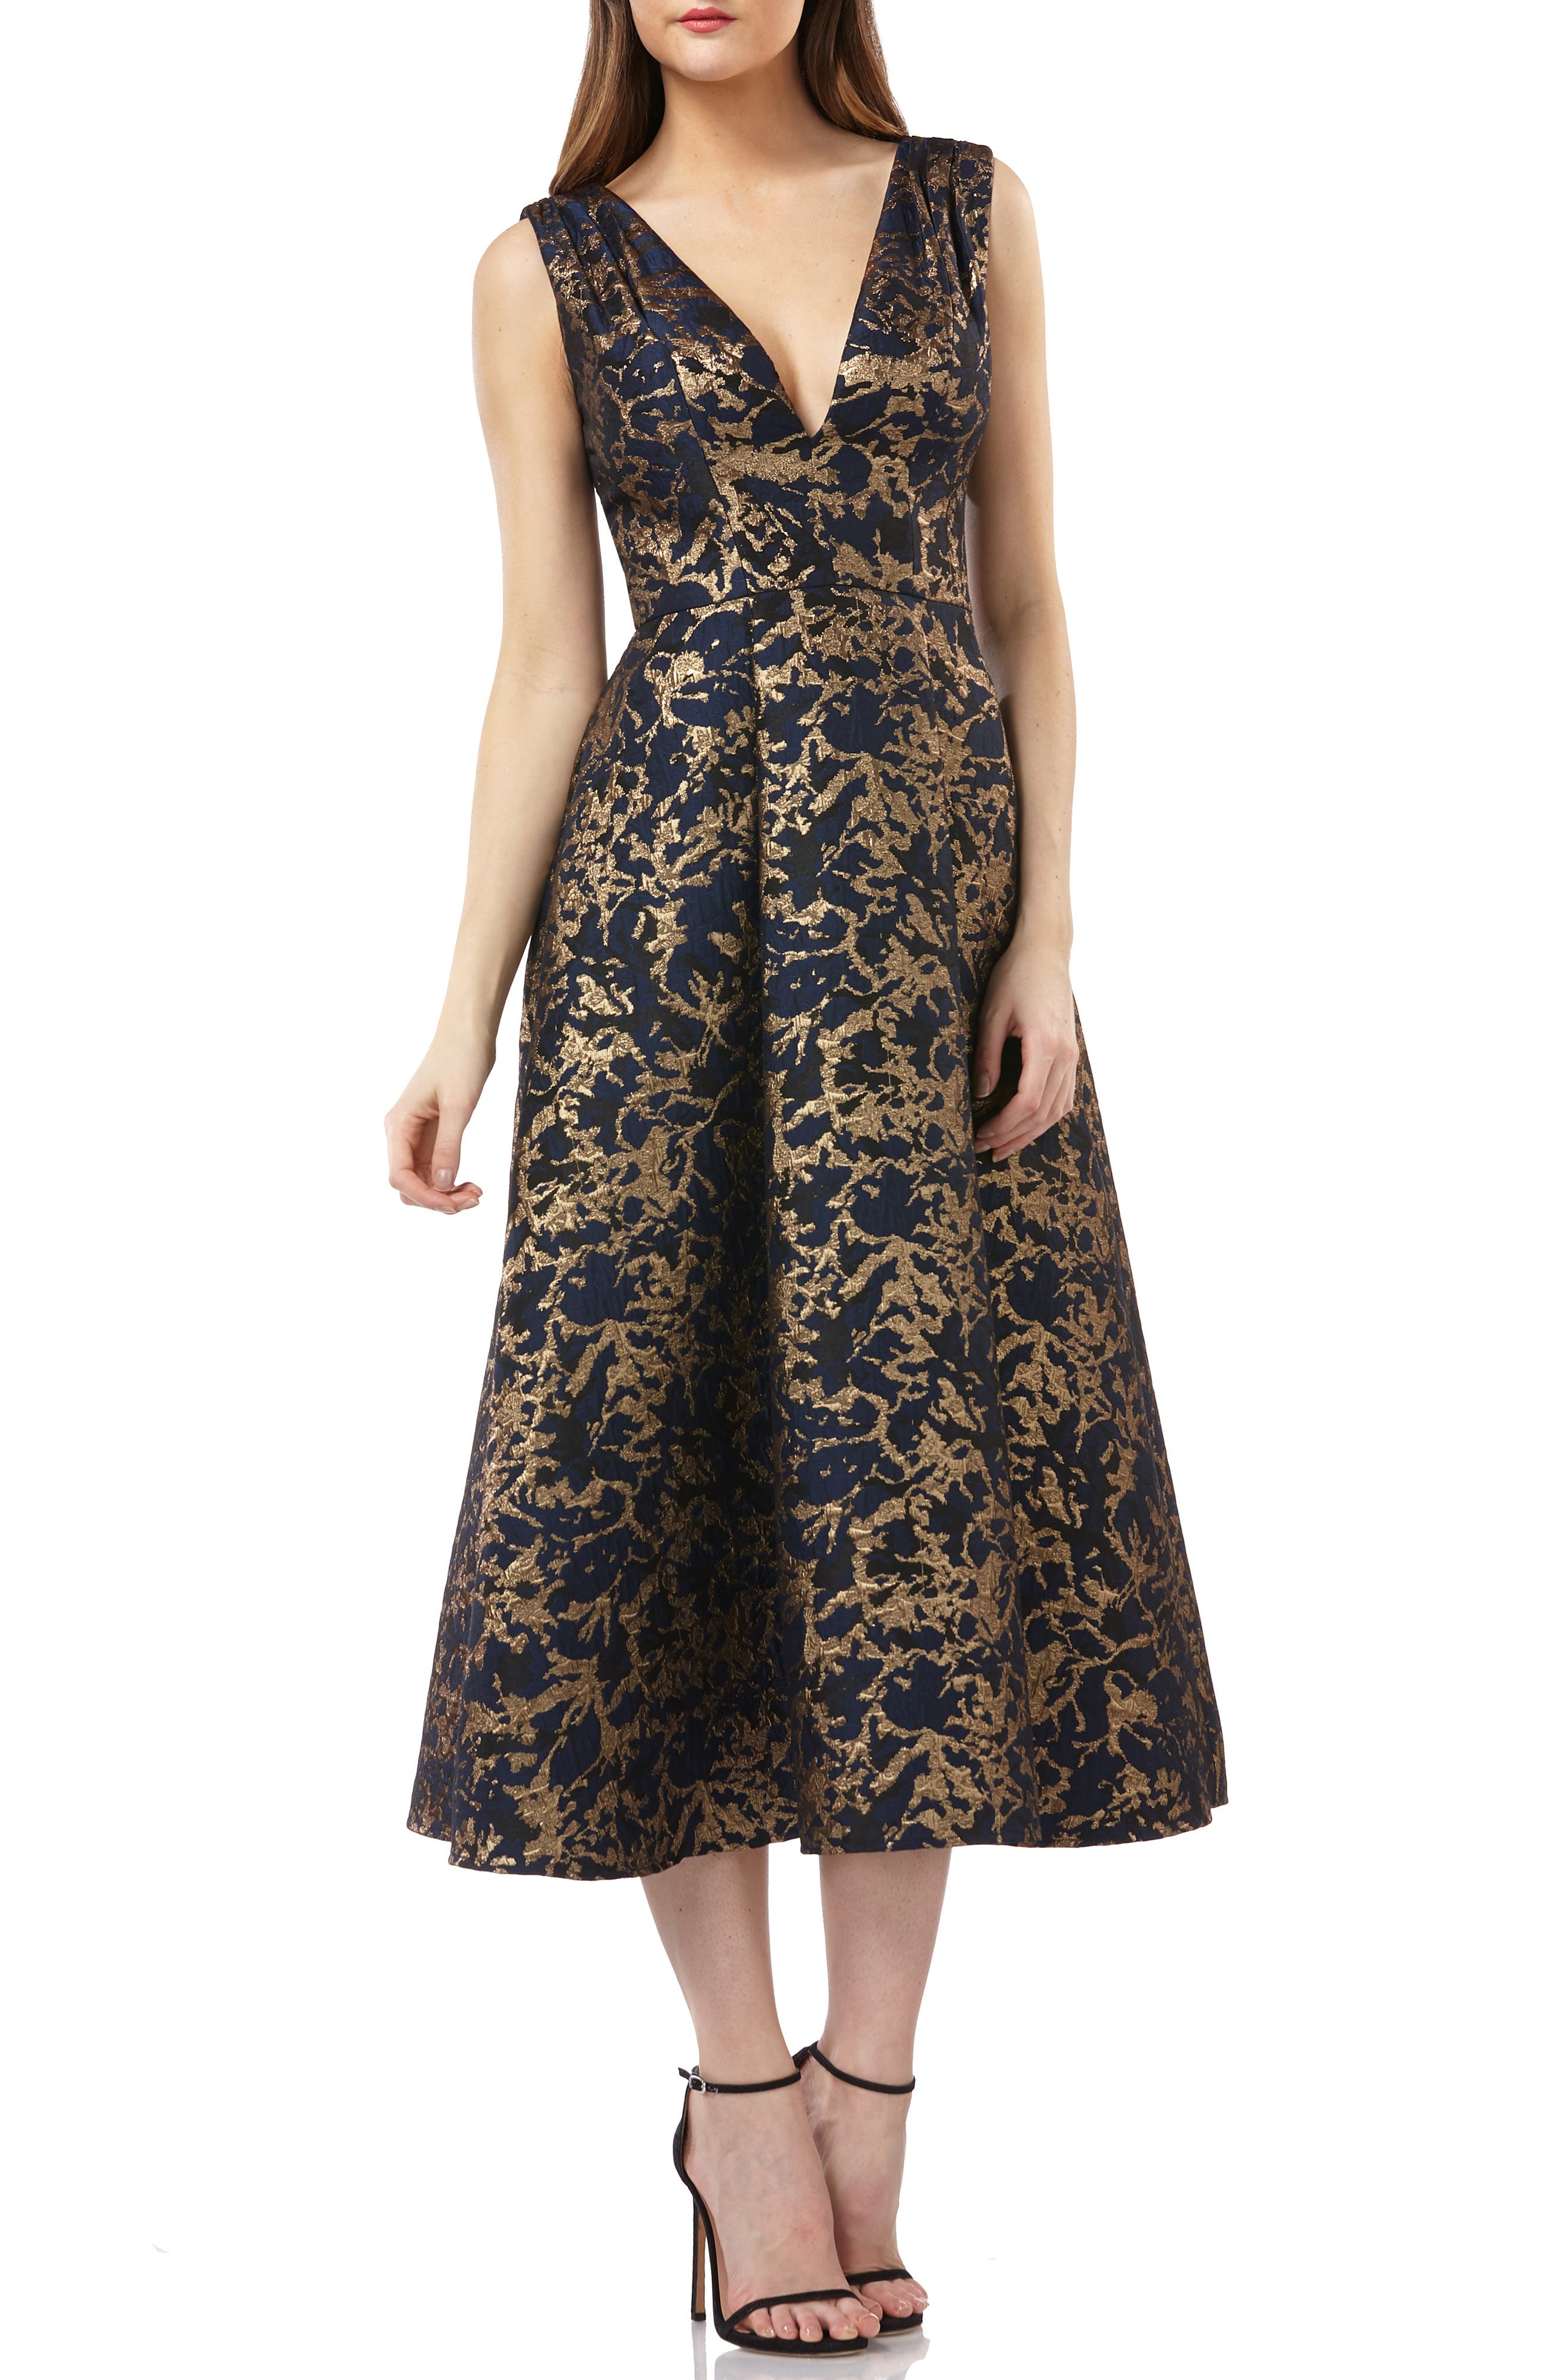 KAY UNGER Pleated Fit-And-Flare Midi Cocktail Dress W/ Pockets in Navy / Gold